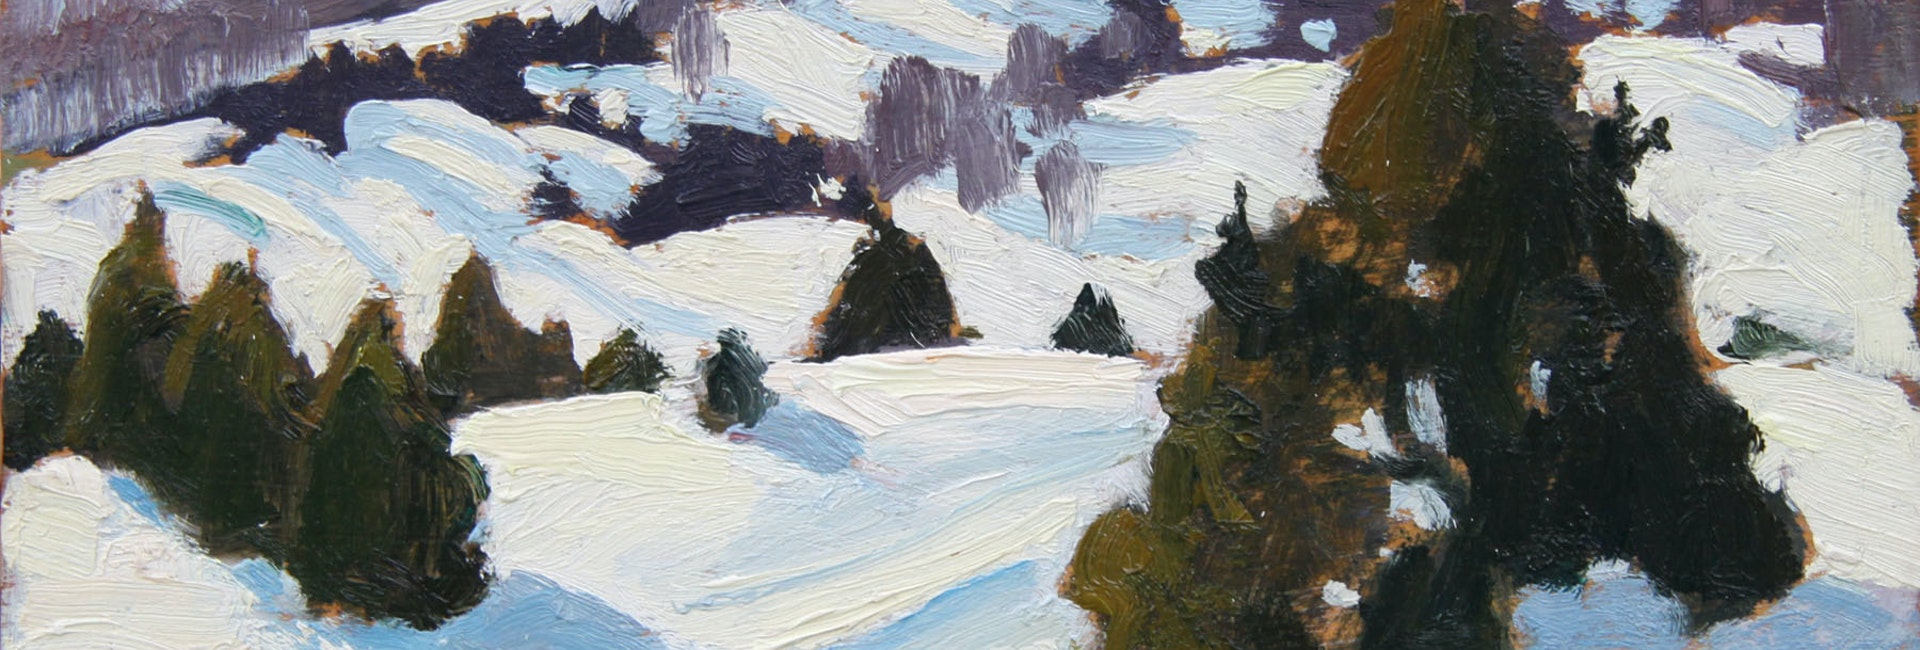 Snow Clouds, Morin Heights by Edwin Holgate, 1947 Oil on Panel - (8.5x10.5 in)